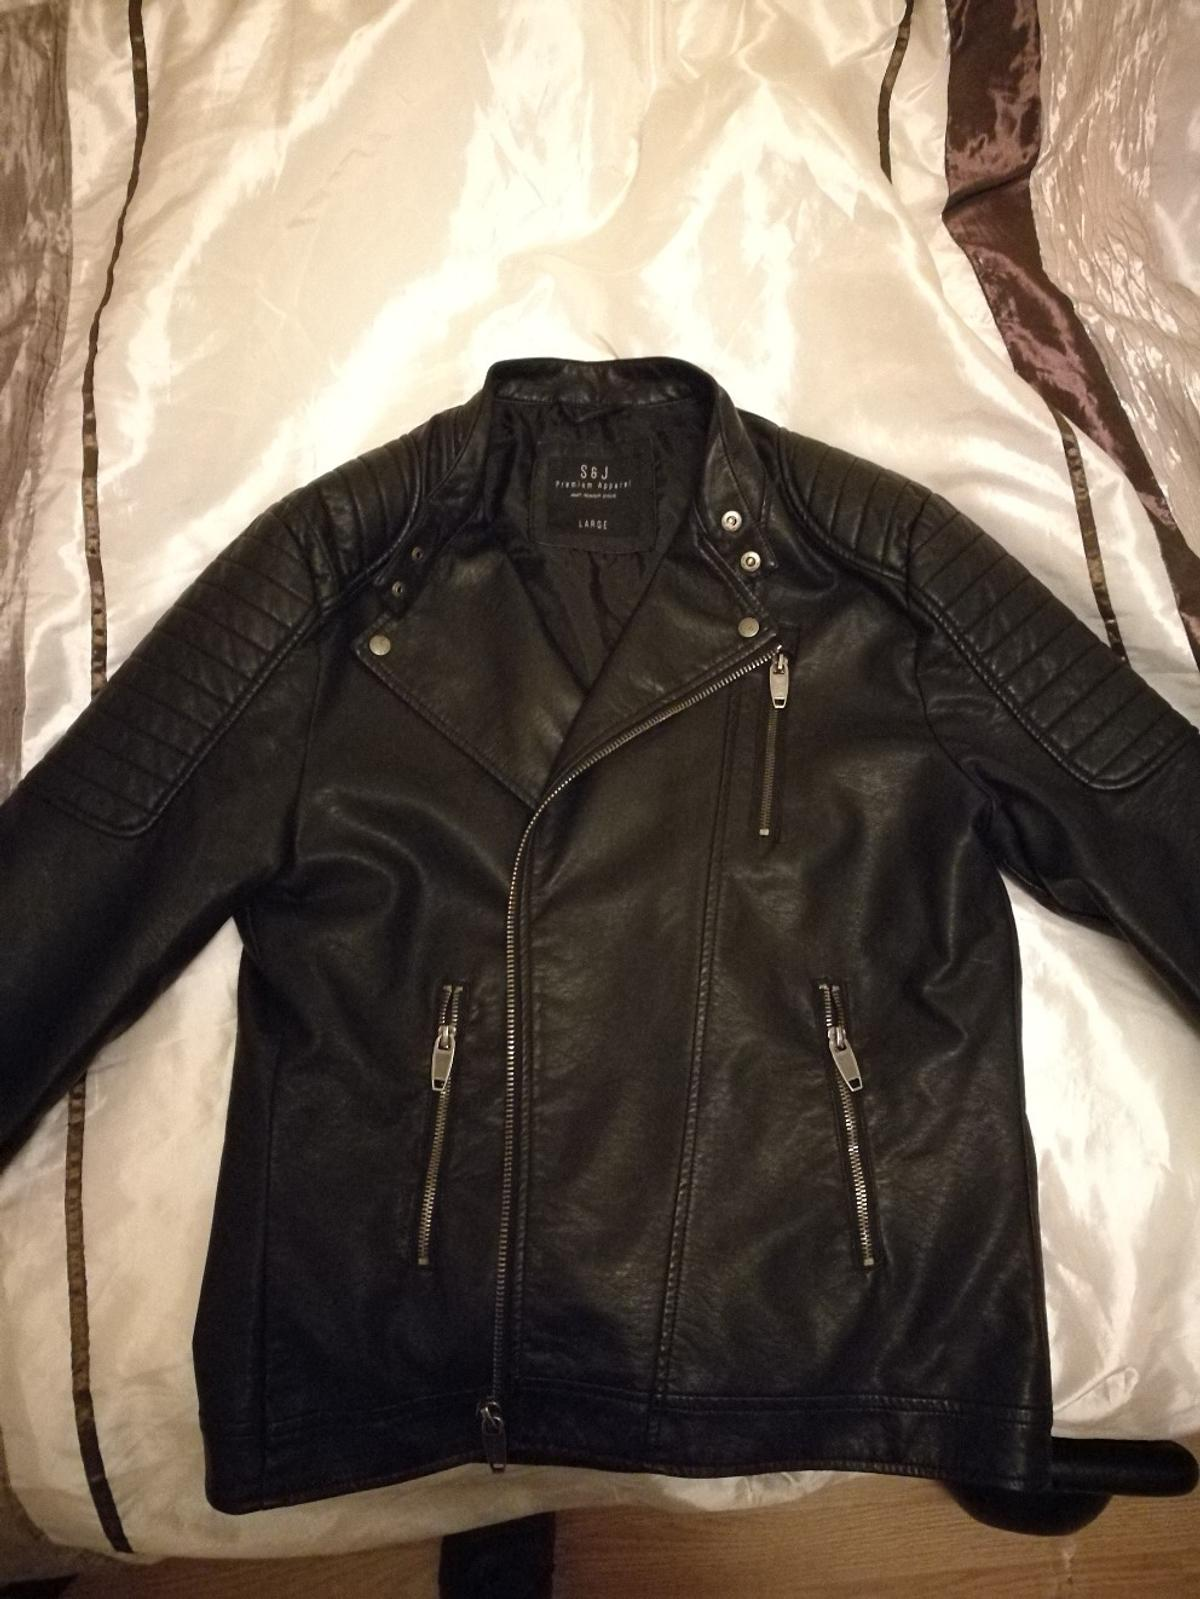 S&J Leather jacket premium apparel in W2 London for £45.00 ...https://www.shpock.com › ... › S&J Leather jacket premium apparel s&j premium apparel